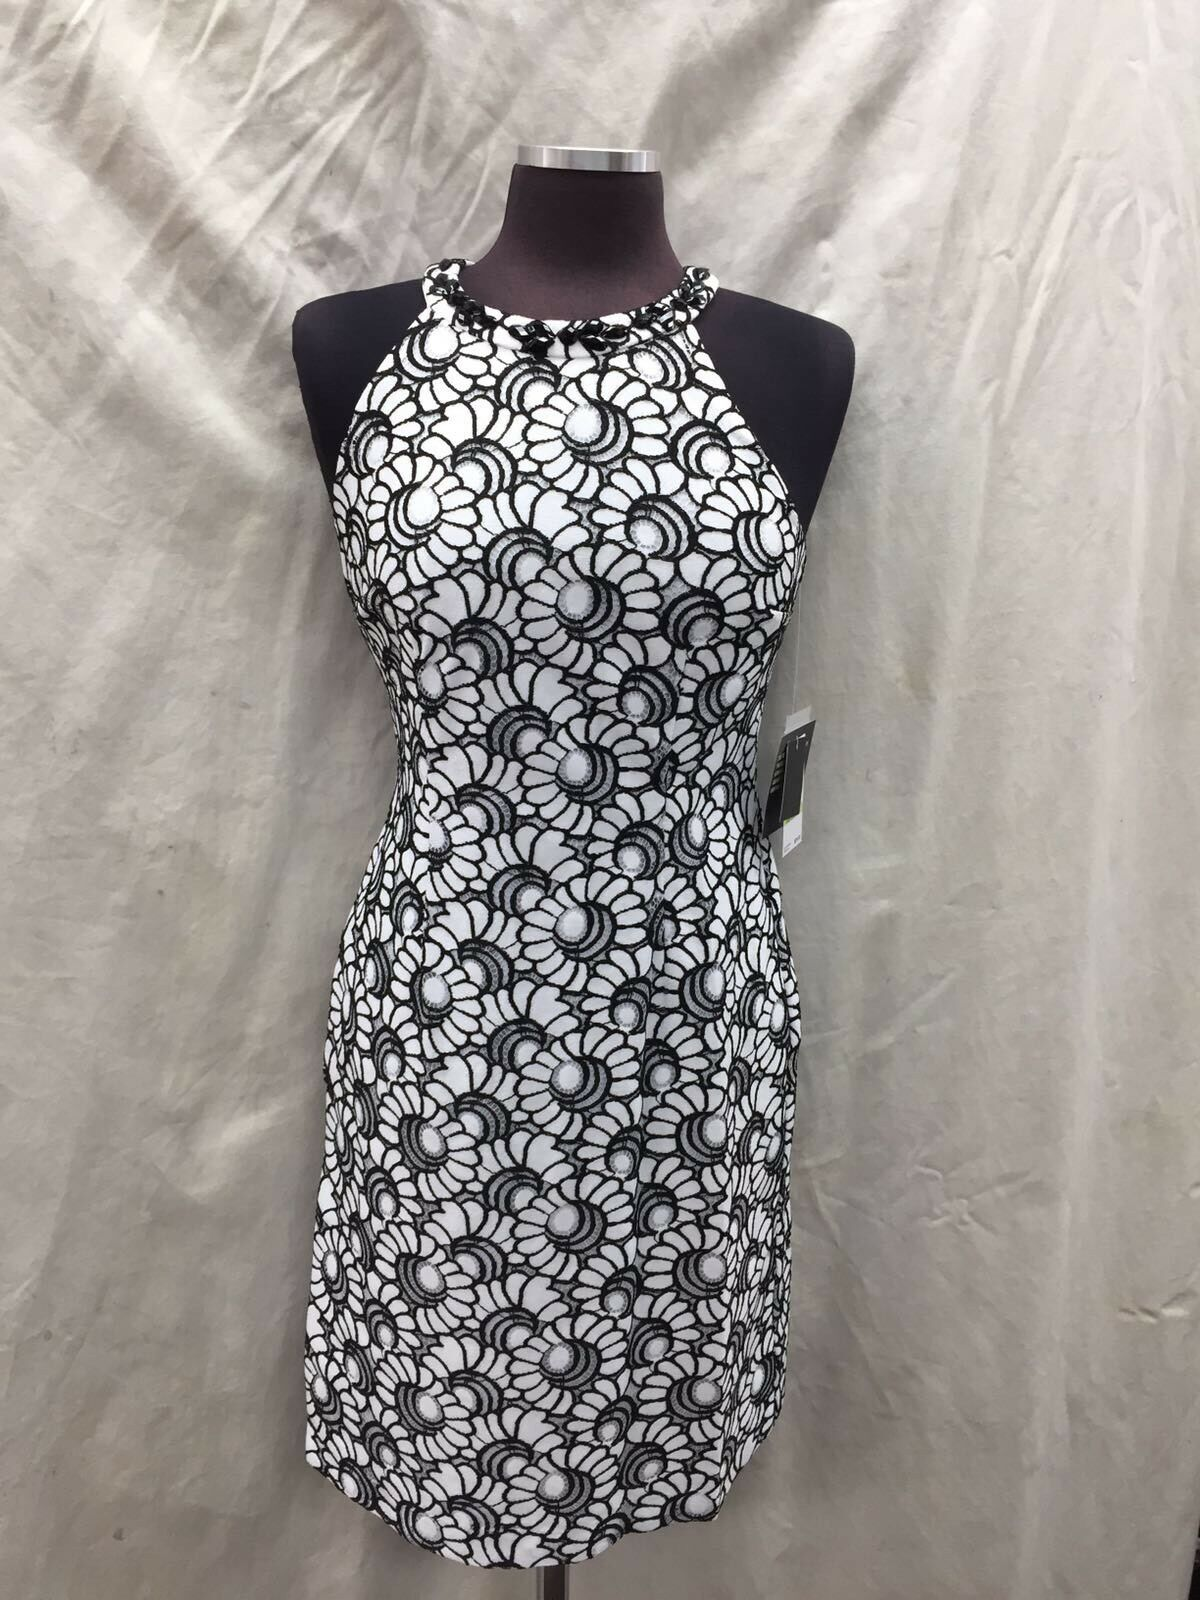 NINE WEST West   DRESS RETAIL NEW WITH TAG LINED Größe 14 LENGTH 40